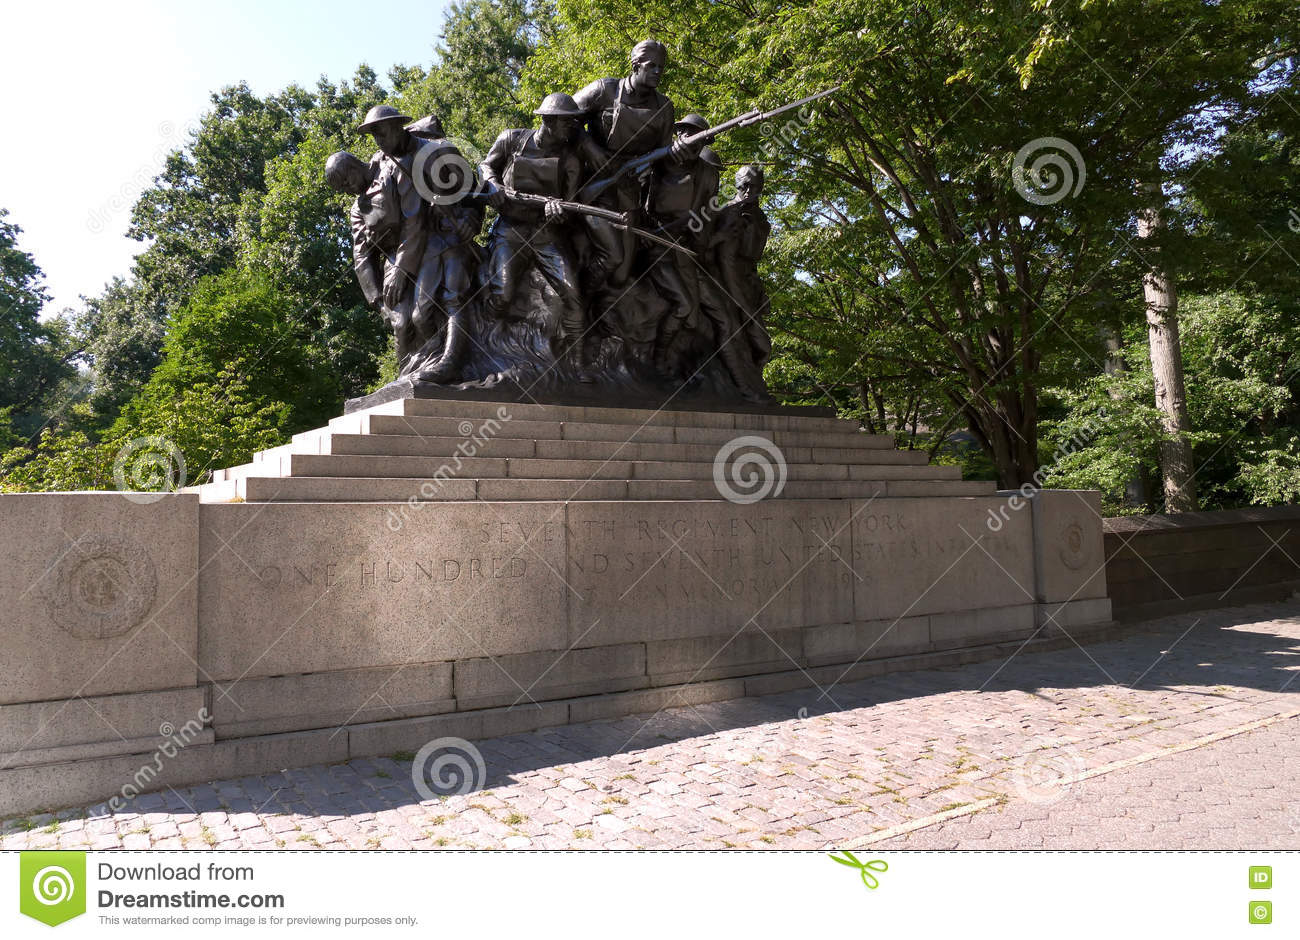 NEW YORK, ETATS-UNIS - 25 août 2016 : Mémorial de WWI pour le 7ème régiment de la milice de New York - USA 107TH, New York